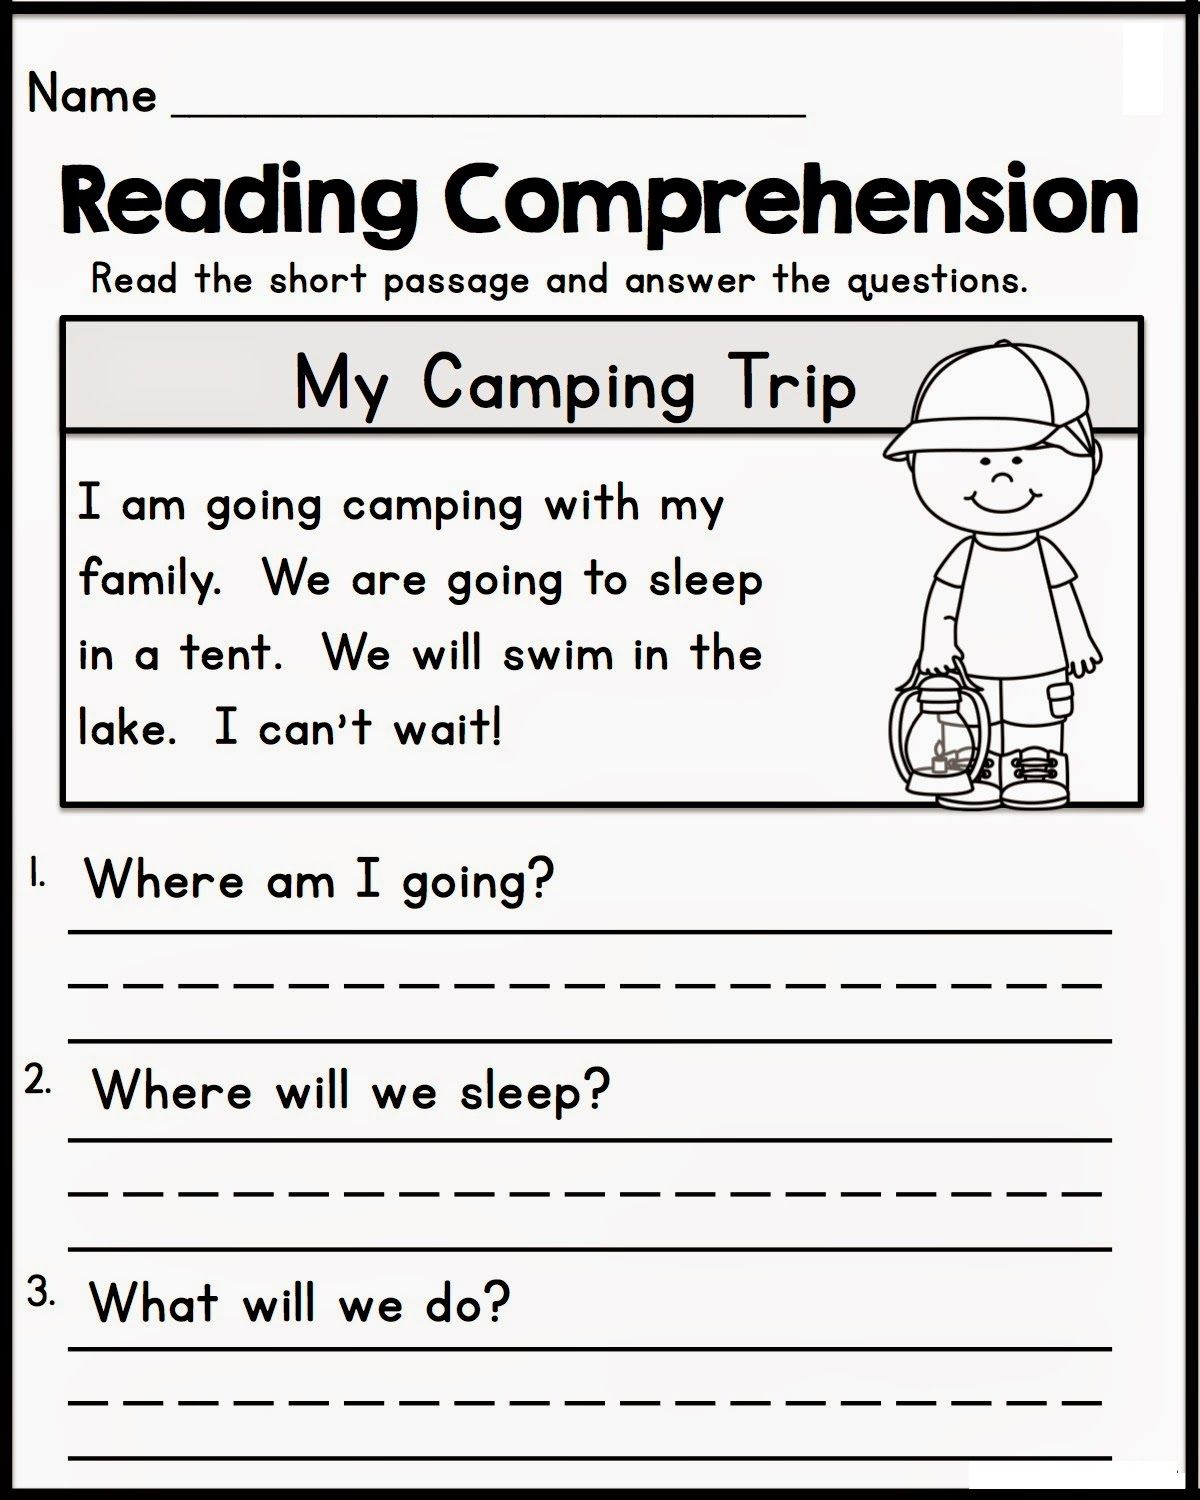 Printable Learning Reading Sheets for Kids   Educative Printable   1st grade  reading worksheets [ 1500 x 1200 Pixel ]